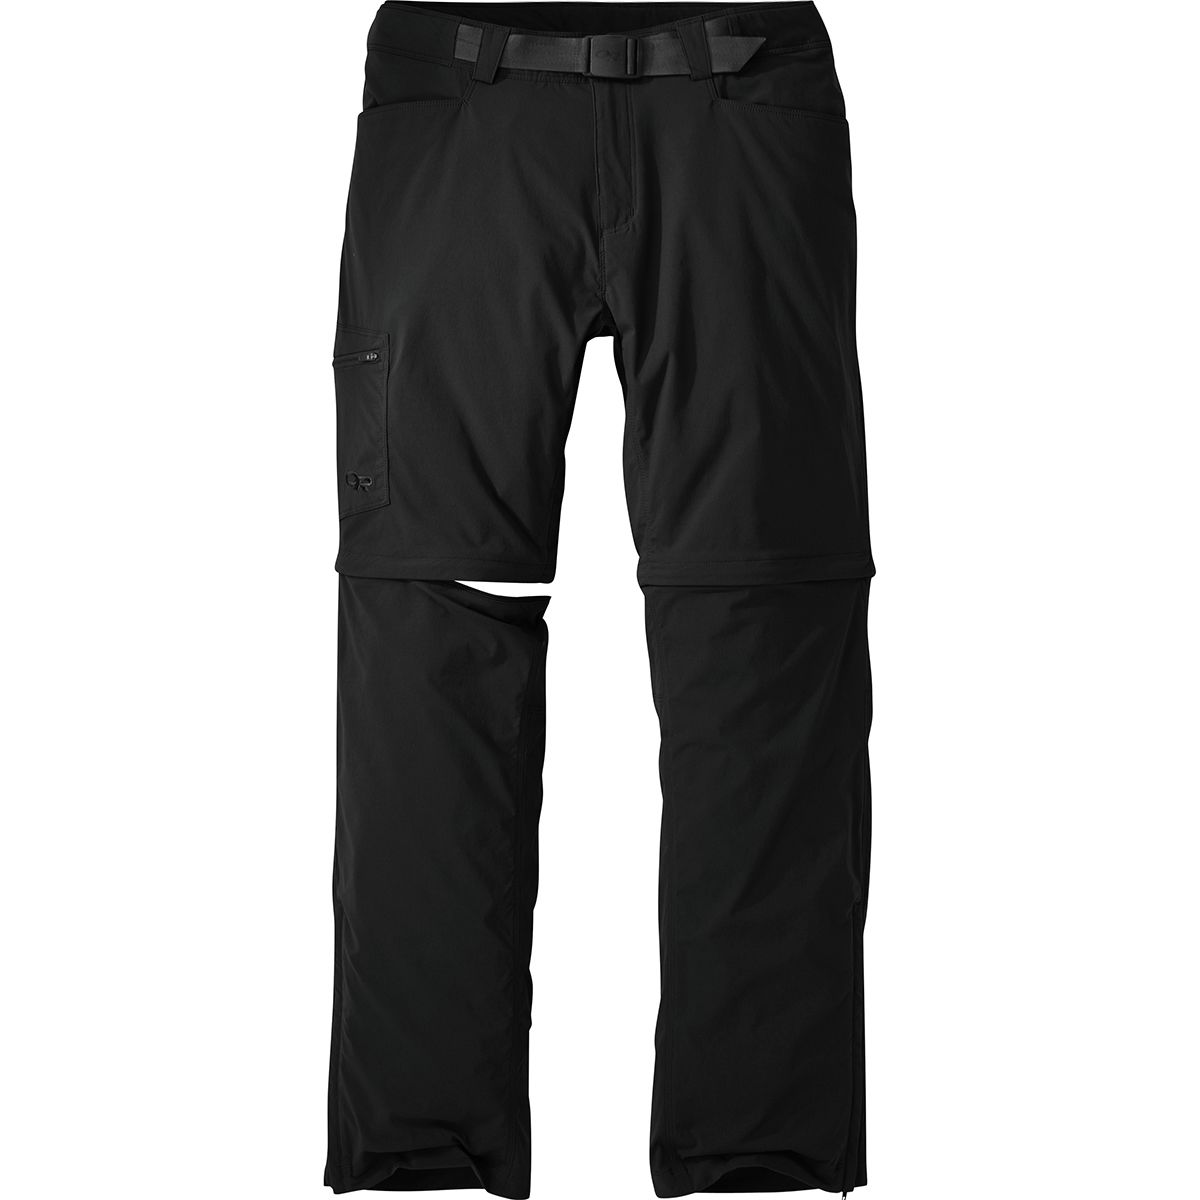 Outdoor Research Equinox Convert Pants